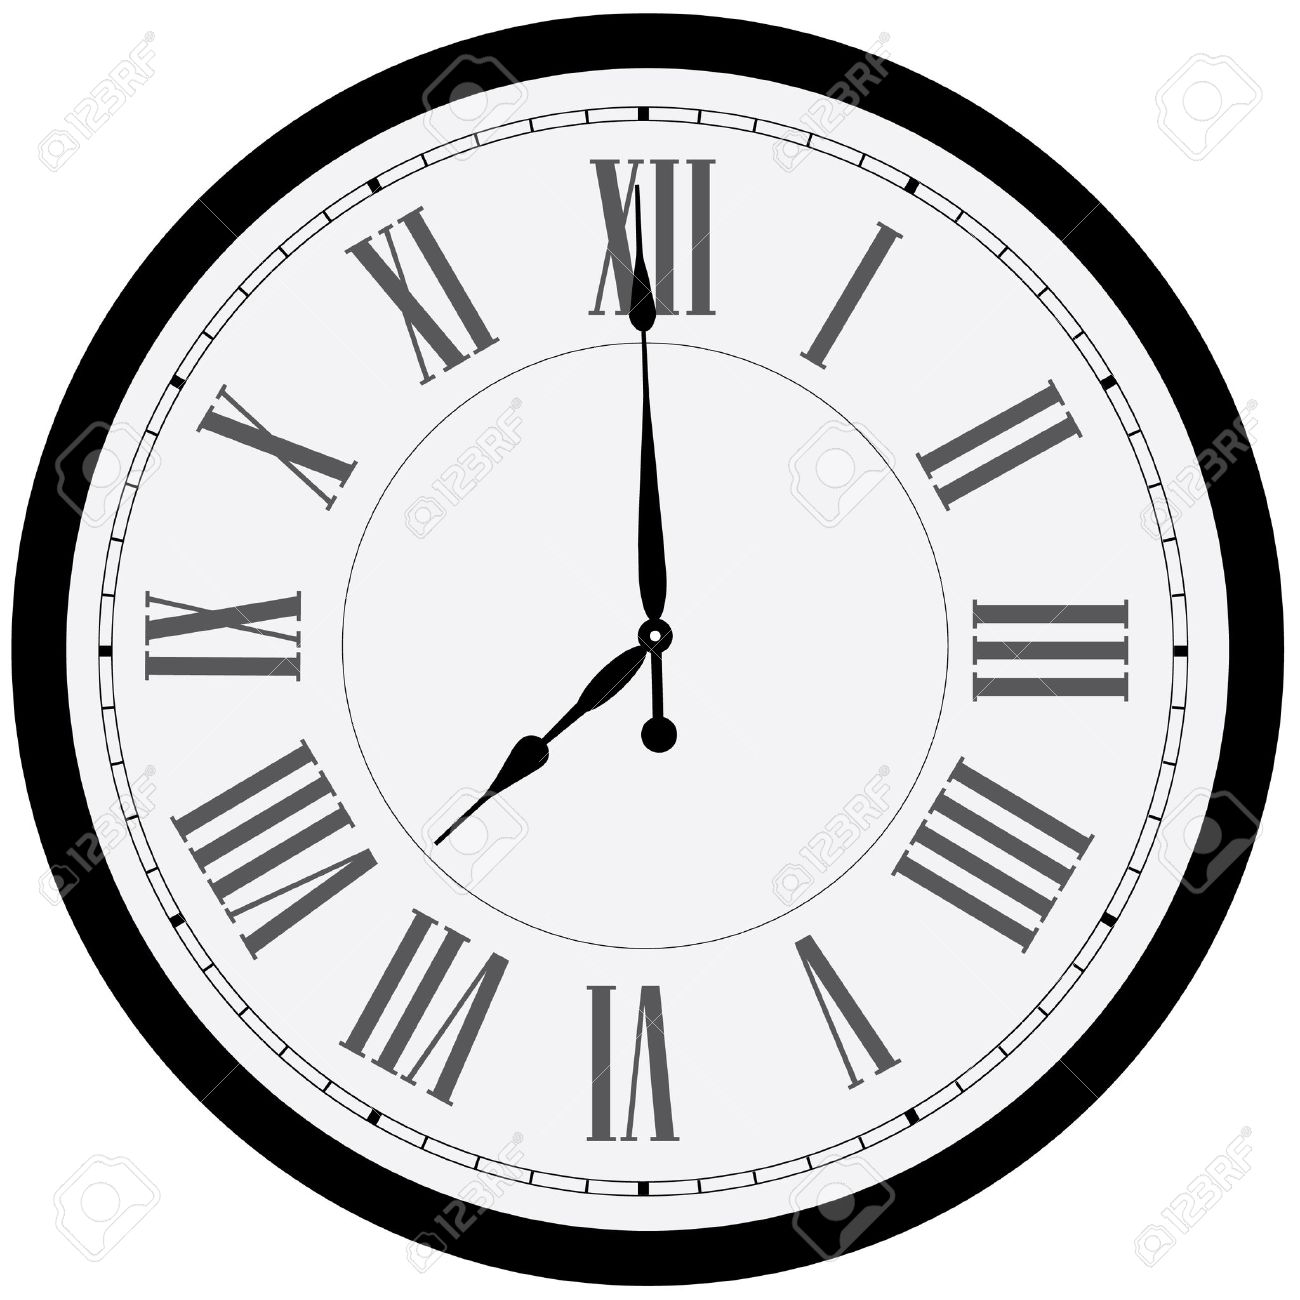 Roman numeral stock photos royalty free roman numeral images and black wall clock raster isolated clock on wall shows eight oclock roman numeral clock amipublicfo Choice Image